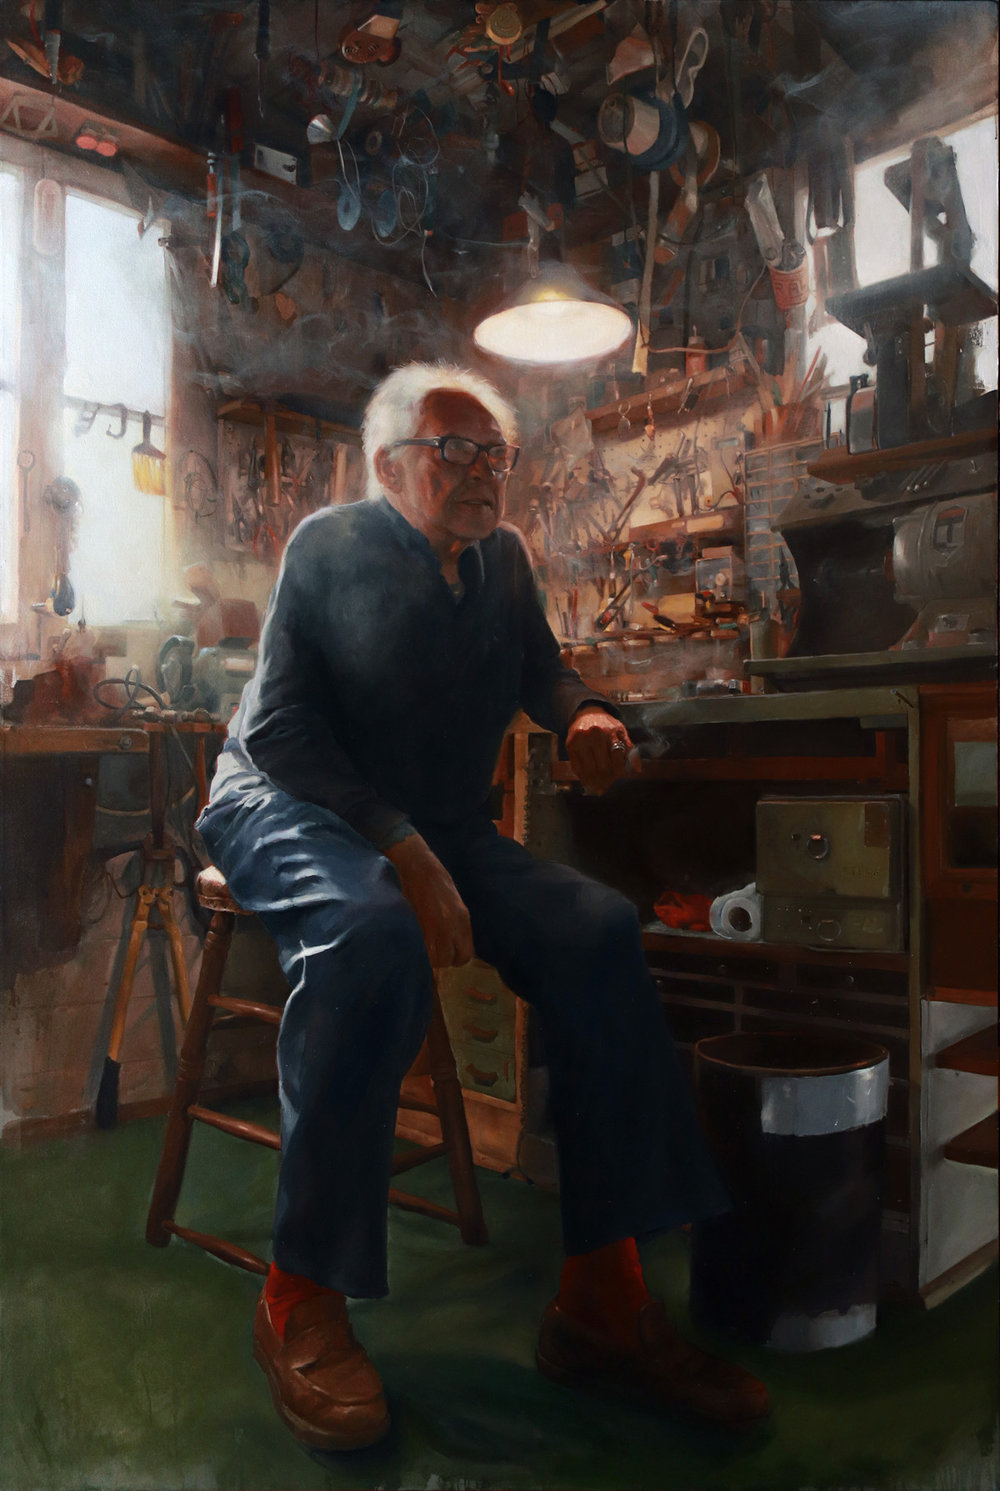 "'Portrait of the Artist, Lyle Tuttle, in his Workshop, Ukiah, CA', oil on canvas, 72"" x 48"", 2018"